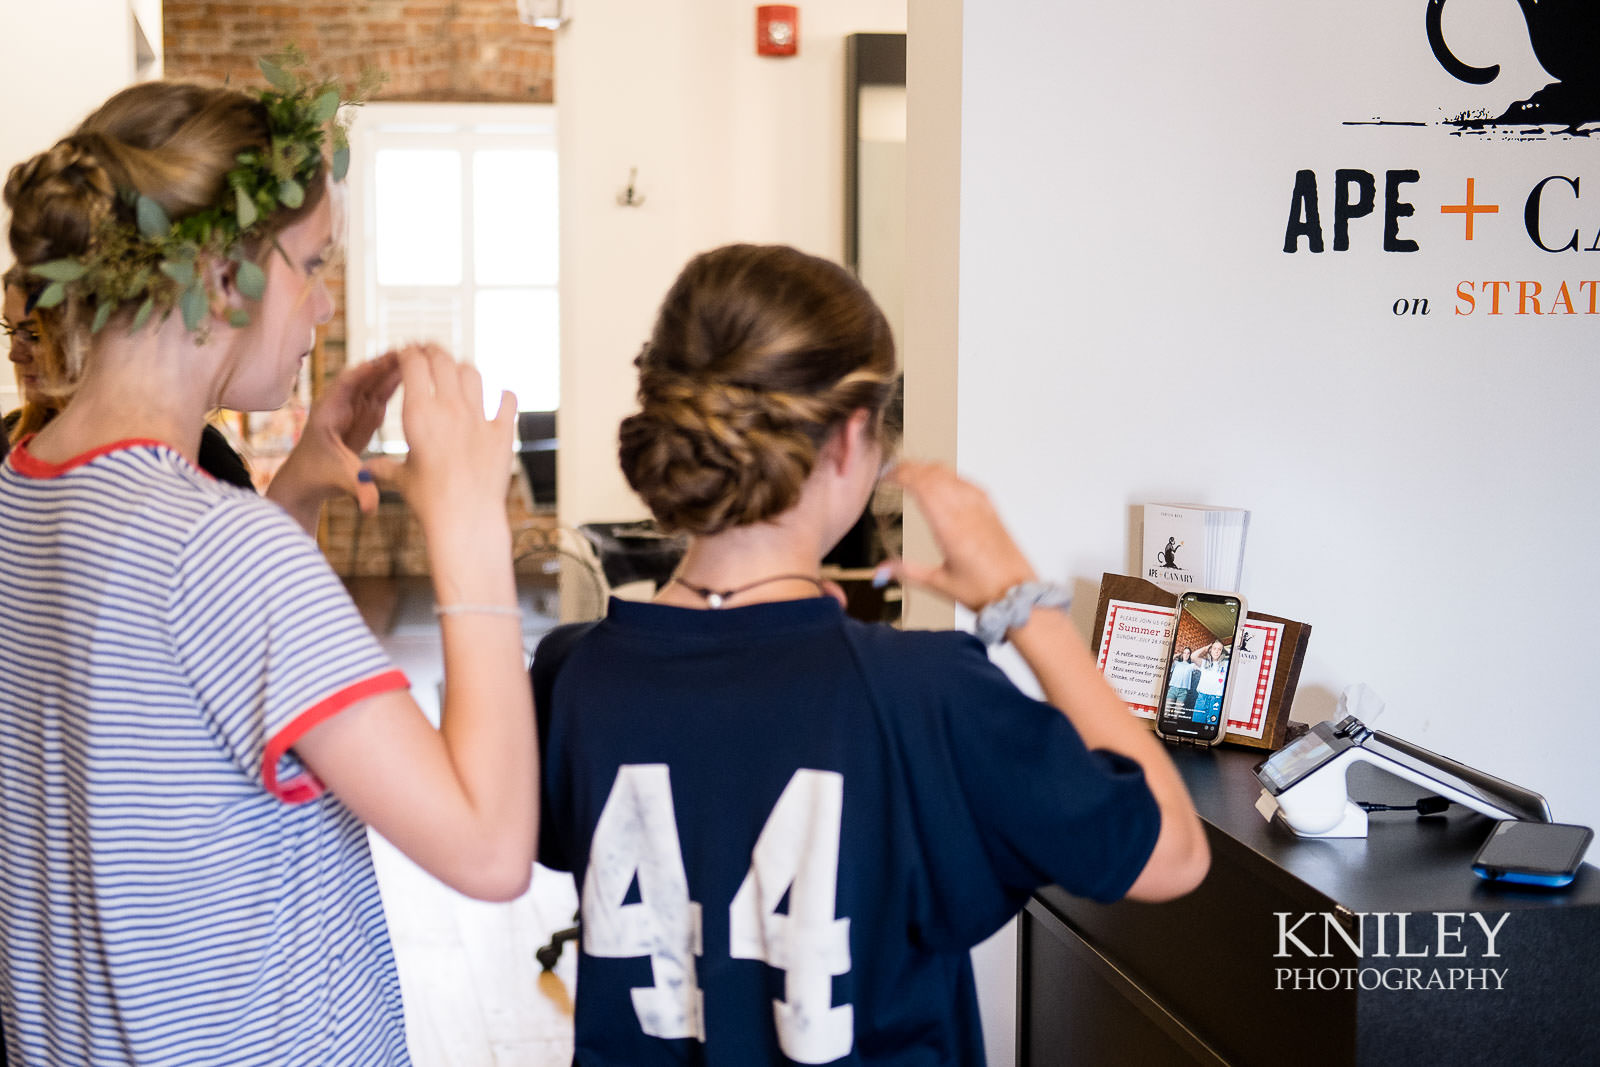 05-Ape-and-Canary-on-Strathallan-wedding-getting-ready-Rochester-NY-Wedding-Photography.jpg